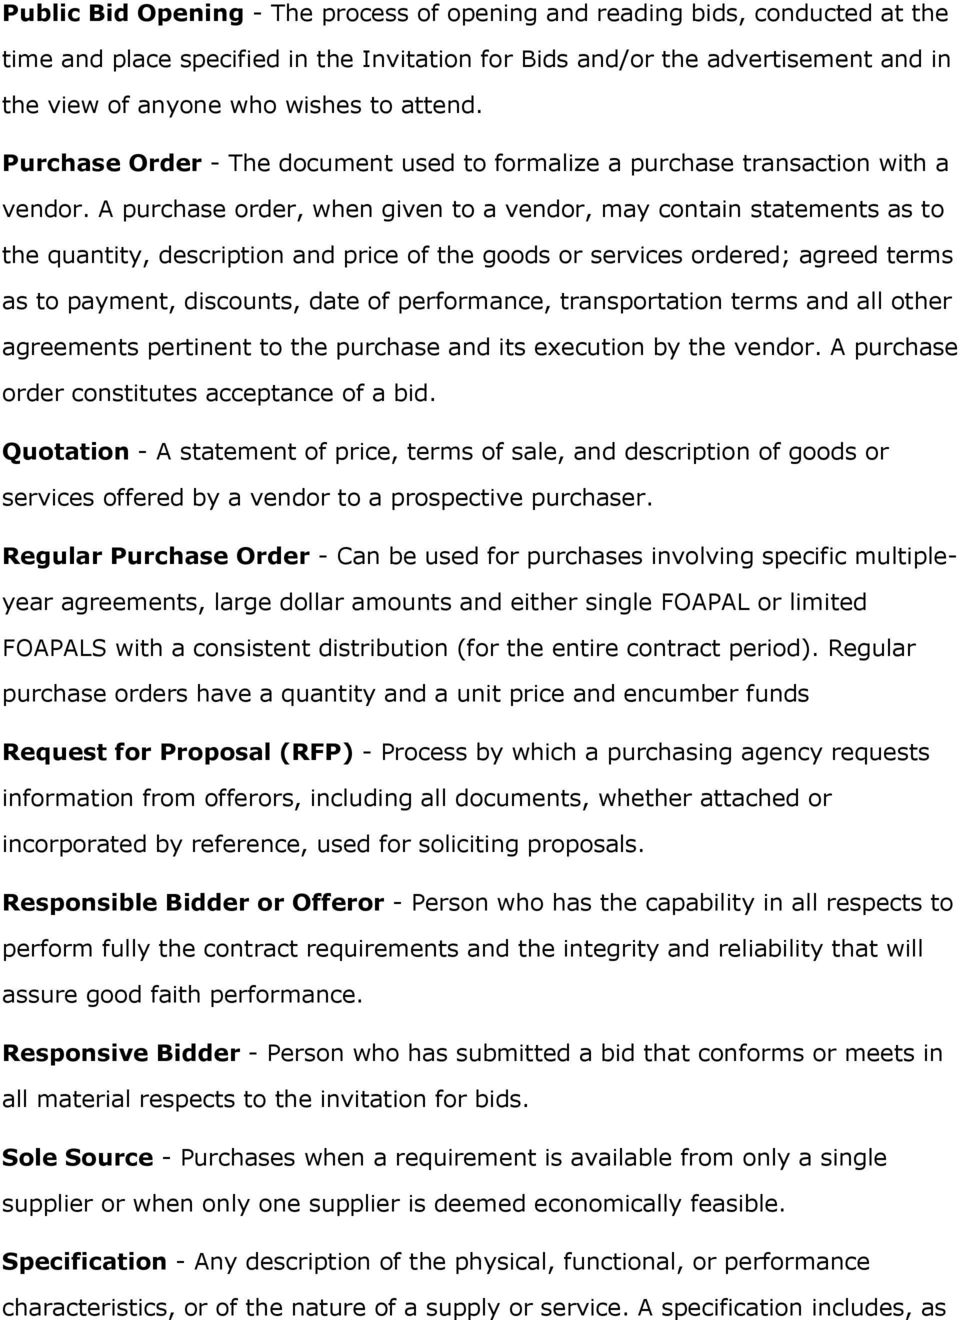 A purchase order, when given to a vendor, may contain statements as to the quantity, description and price of the goods or services ordered; agreed terms as to payment, discounts, date of